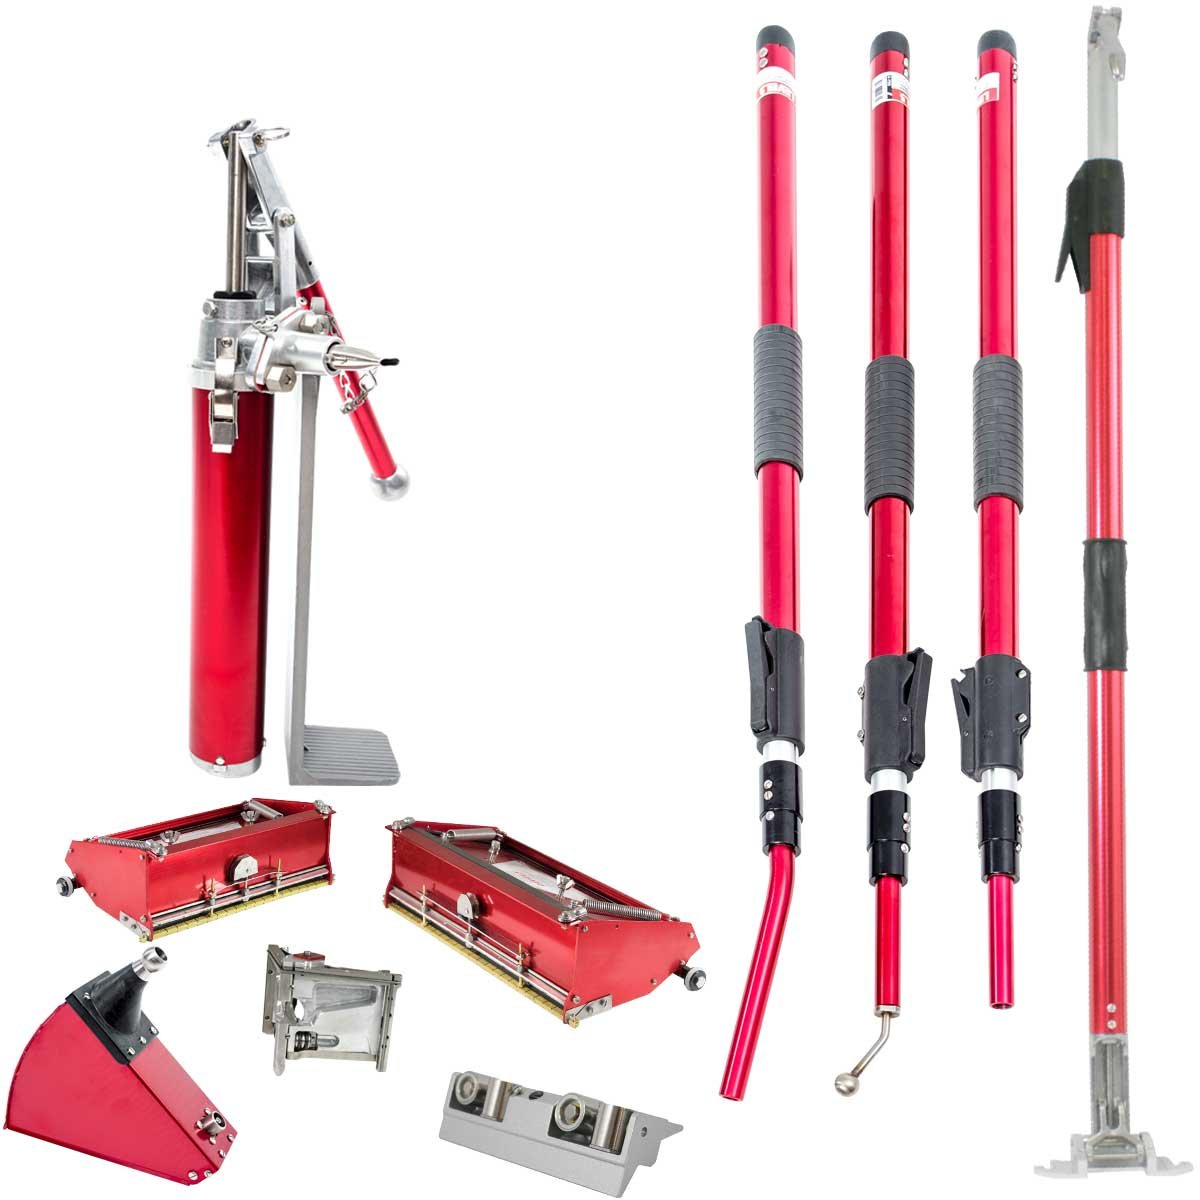 Level5 Extendable Handle Drywall Finishing Set with Flat Boxes, Corner Roller, Angle Box, Angle Head, Pump and Extendable Handles